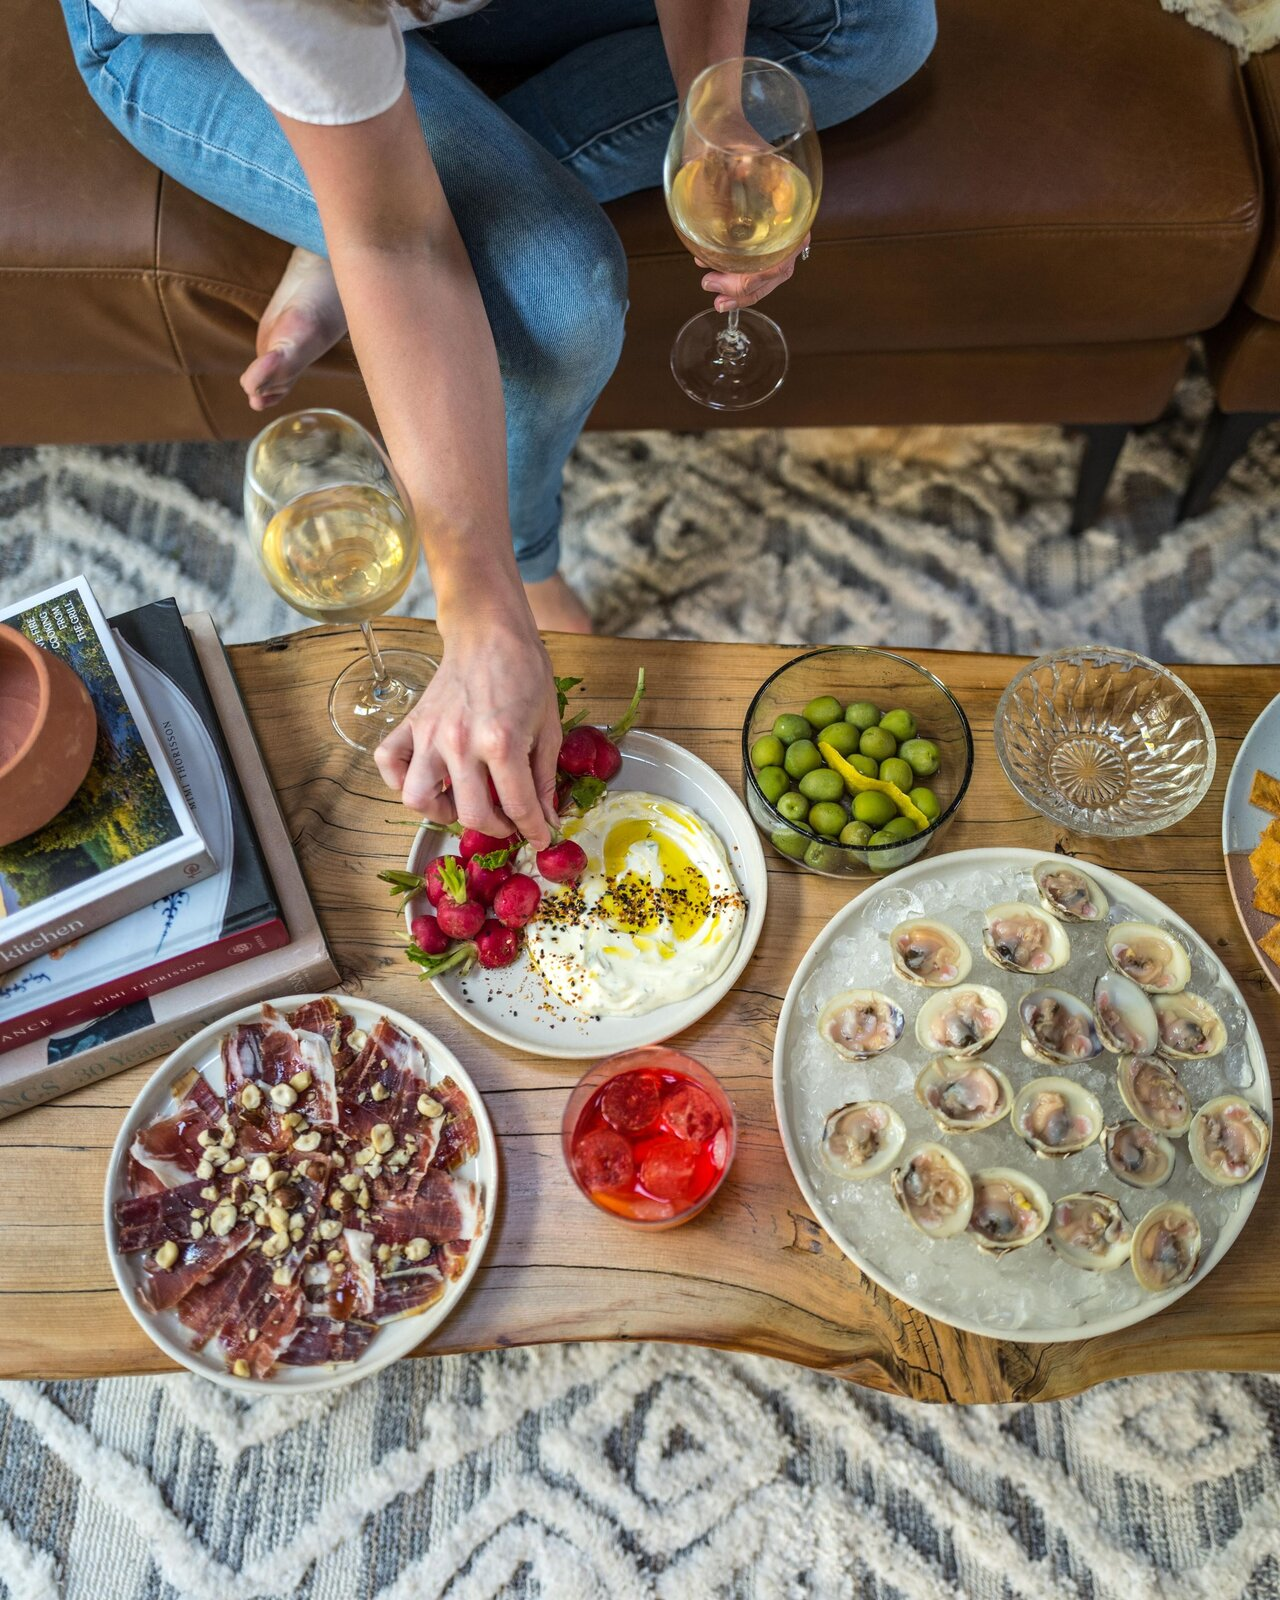 After a hard day's work on the house, Danielle and Ely treated themselves to oysters and charcuturie.  Photo 18 of 19 in Budget Breakdown: A DIY Couple Turn an Aging Barn House Into a Dreamy Catskills Getaway for $55.6K